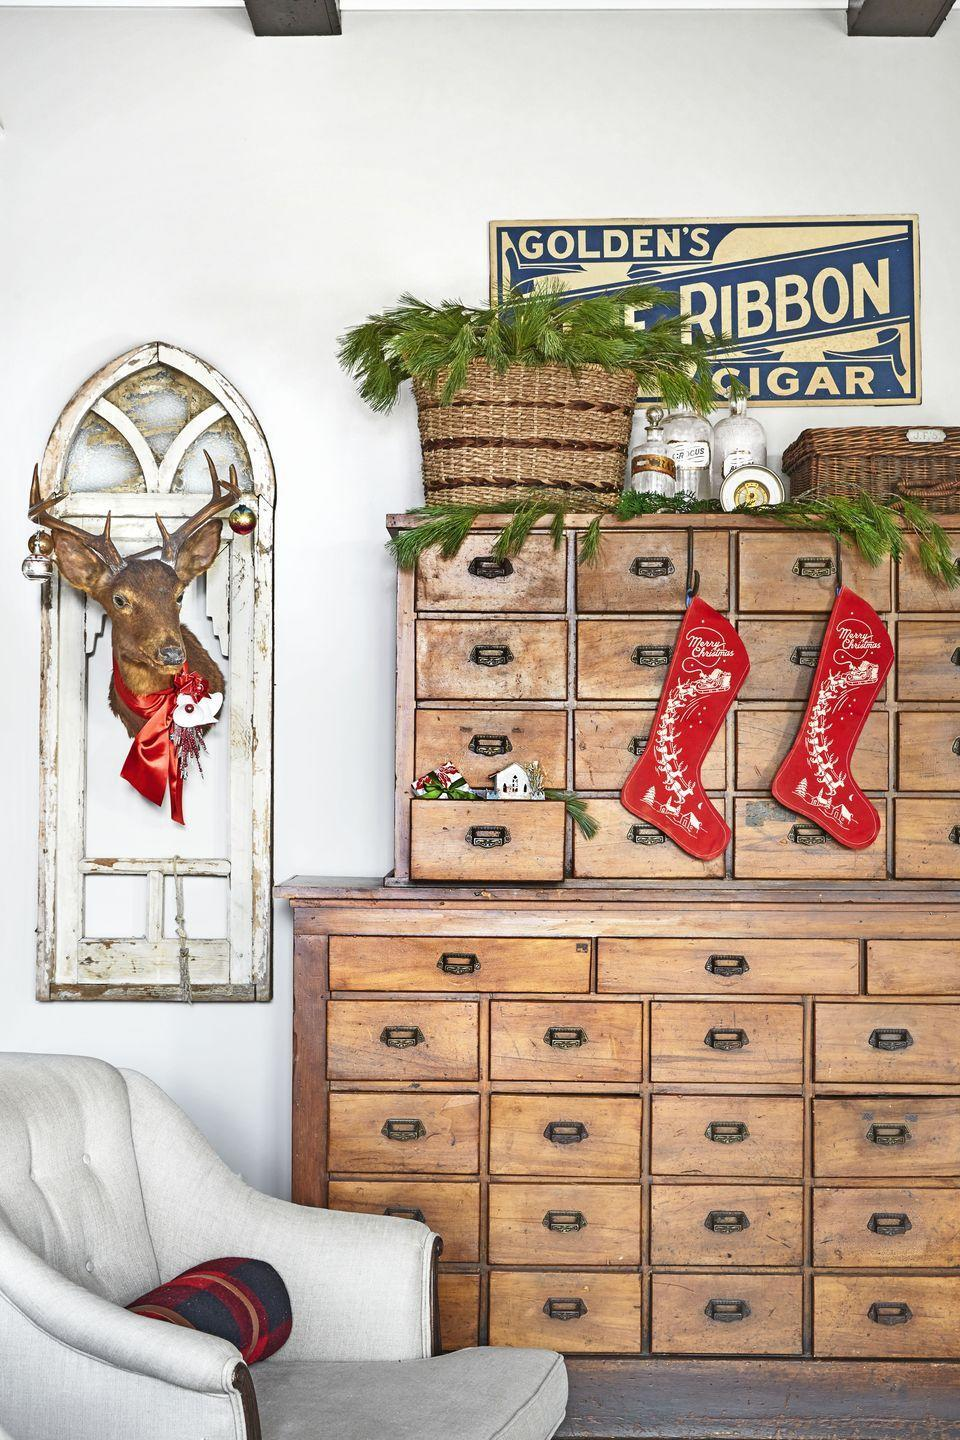 """<p>Make dressers, armoires, and other storage pieces fit for a visit from Santa by <a href=""""https://www.countryliving.com/shopping/g1407/personalized-christmas-stockings/"""" rel=""""nofollow noopener"""" target=""""_blank"""" data-ylk=""""slk:hanging stockings"""" class=""""link rapid-noclick-resp"""">hanging stockings</a> from their pulls and drawers. </p><p><a class=""""link rapid-noclick-resp"""" href=""""https://www.amazon.com/Solucky-Classic-Christmas-Stockings-Decorations/dp/B075S1WMRC/?tag=syn-yahoo-20&ascsubtag=%5Bartid%7C10050.g.1247%5Bsrc%7Cyahoo-us"""" rel=""""nofollow noopener"""" target=""""_blank"""" data-ylk=""""slk:SHOP STOCKINGS"""">SHOP STOCKINGS</a></p>"""